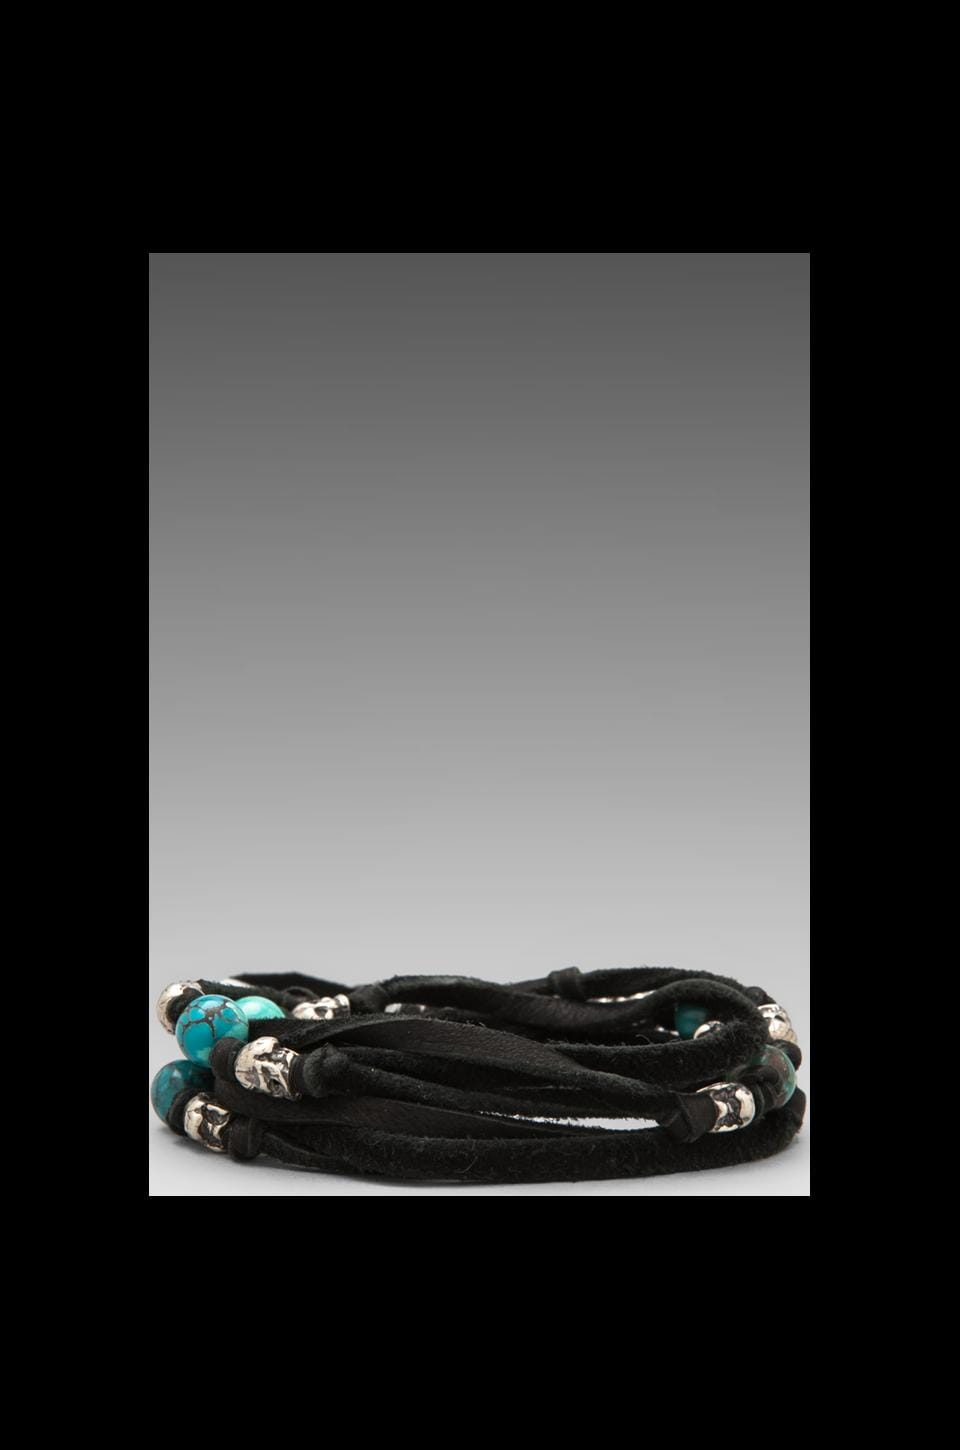 M.Cohen 5-Layer Leather Skull Wrap Bracelet in Black Leather